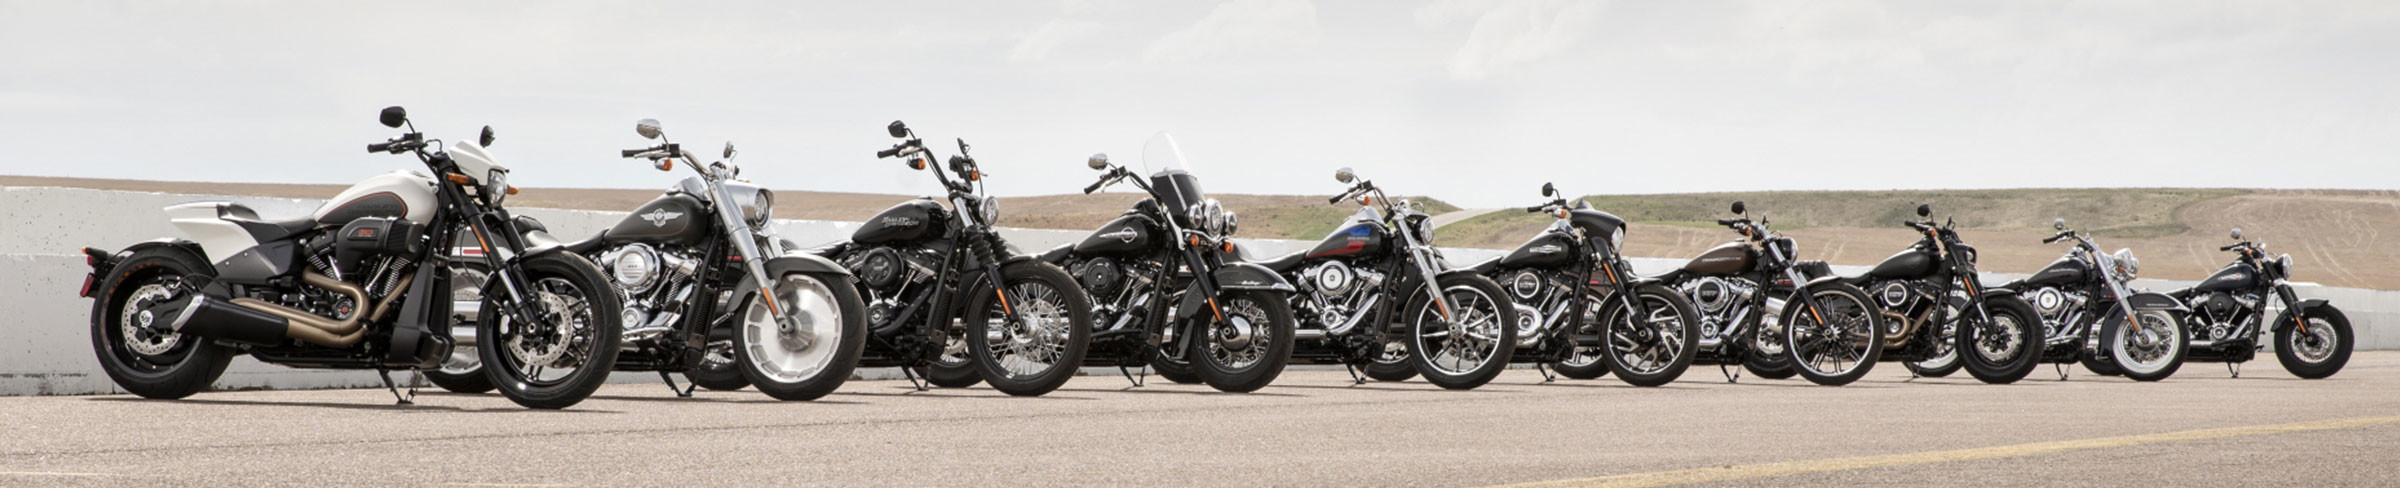 New inventory at Savannah Harley-Davidson® and Golden Isles Harley-Davidson®